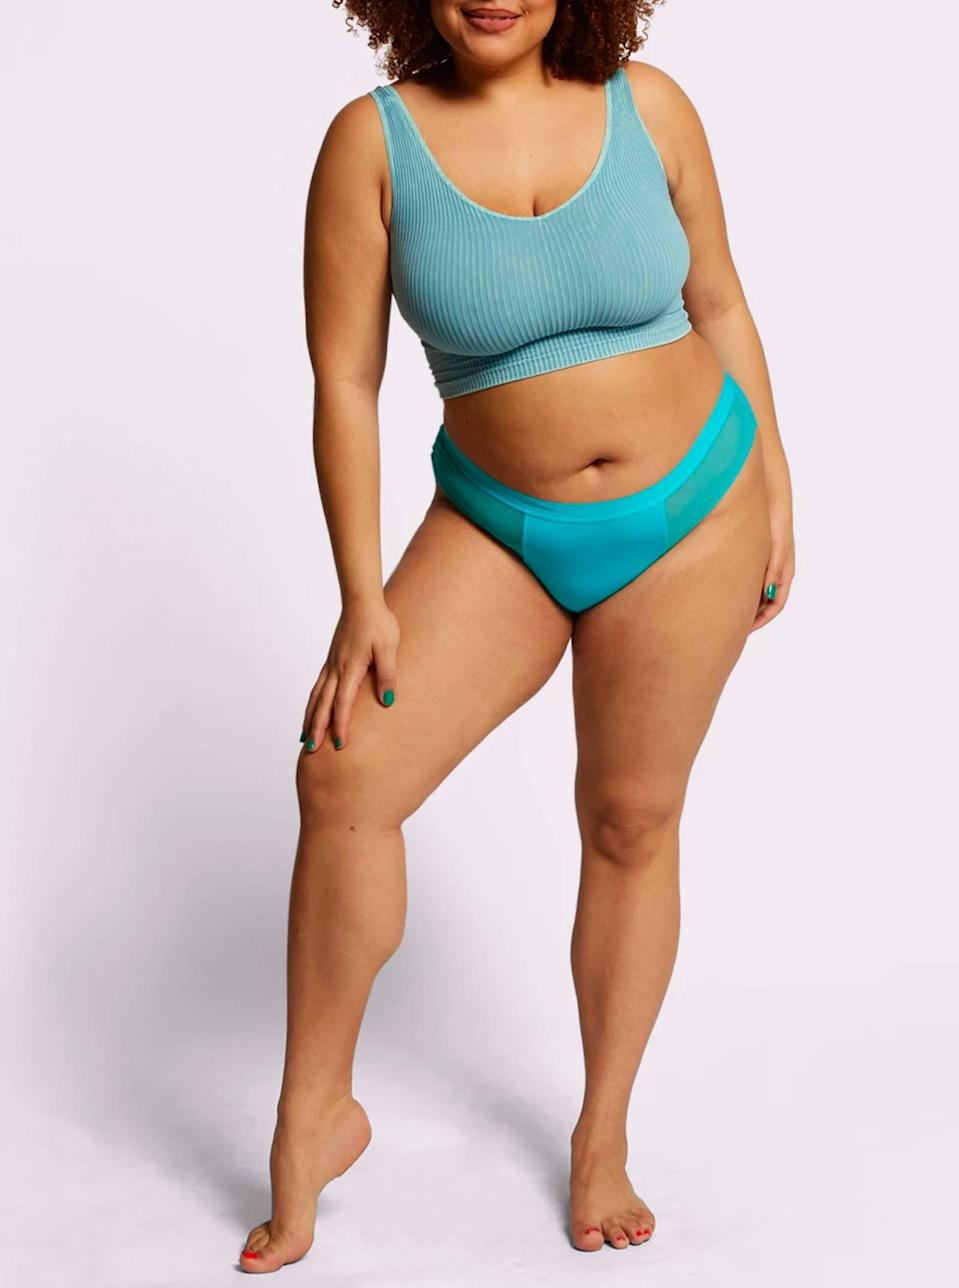 """You don't always have to play it safe with white or beige undies. This bright aqua pair is just as discreet under jeans or dark pants. $9, Parade. <a href=""""https://yourparade.com/products/cheeky?"""" rel=""""nofollow noopener"""" target=""""_blank"""" data-ylk=""""slk:Get it now!"""" class=""""link rapid-noclick-resp"""">Get it now!</a>"""